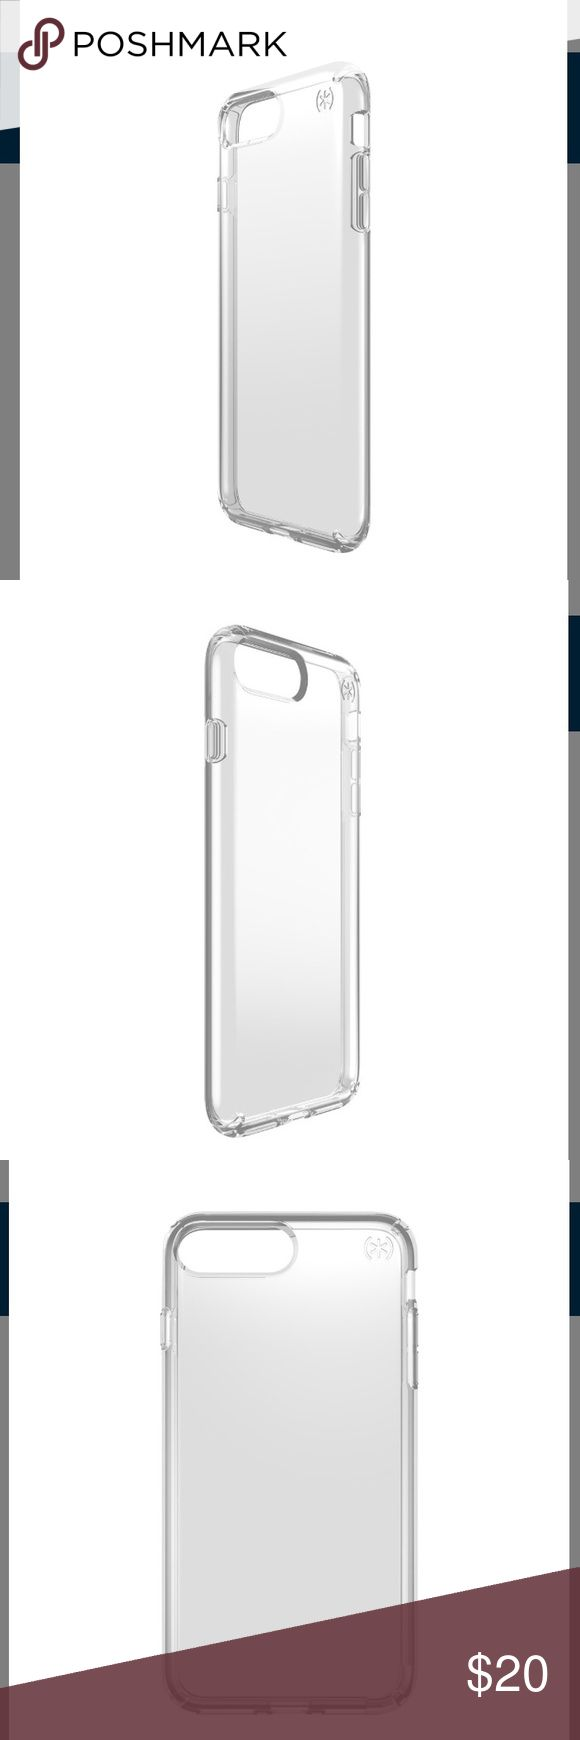 Speck Presidio Clear iPhone 7 Plus Case New in box. Speck Presidio Clear iPhone 7 Plus Case. Clear - no color. Speck Accessories Phone Cases